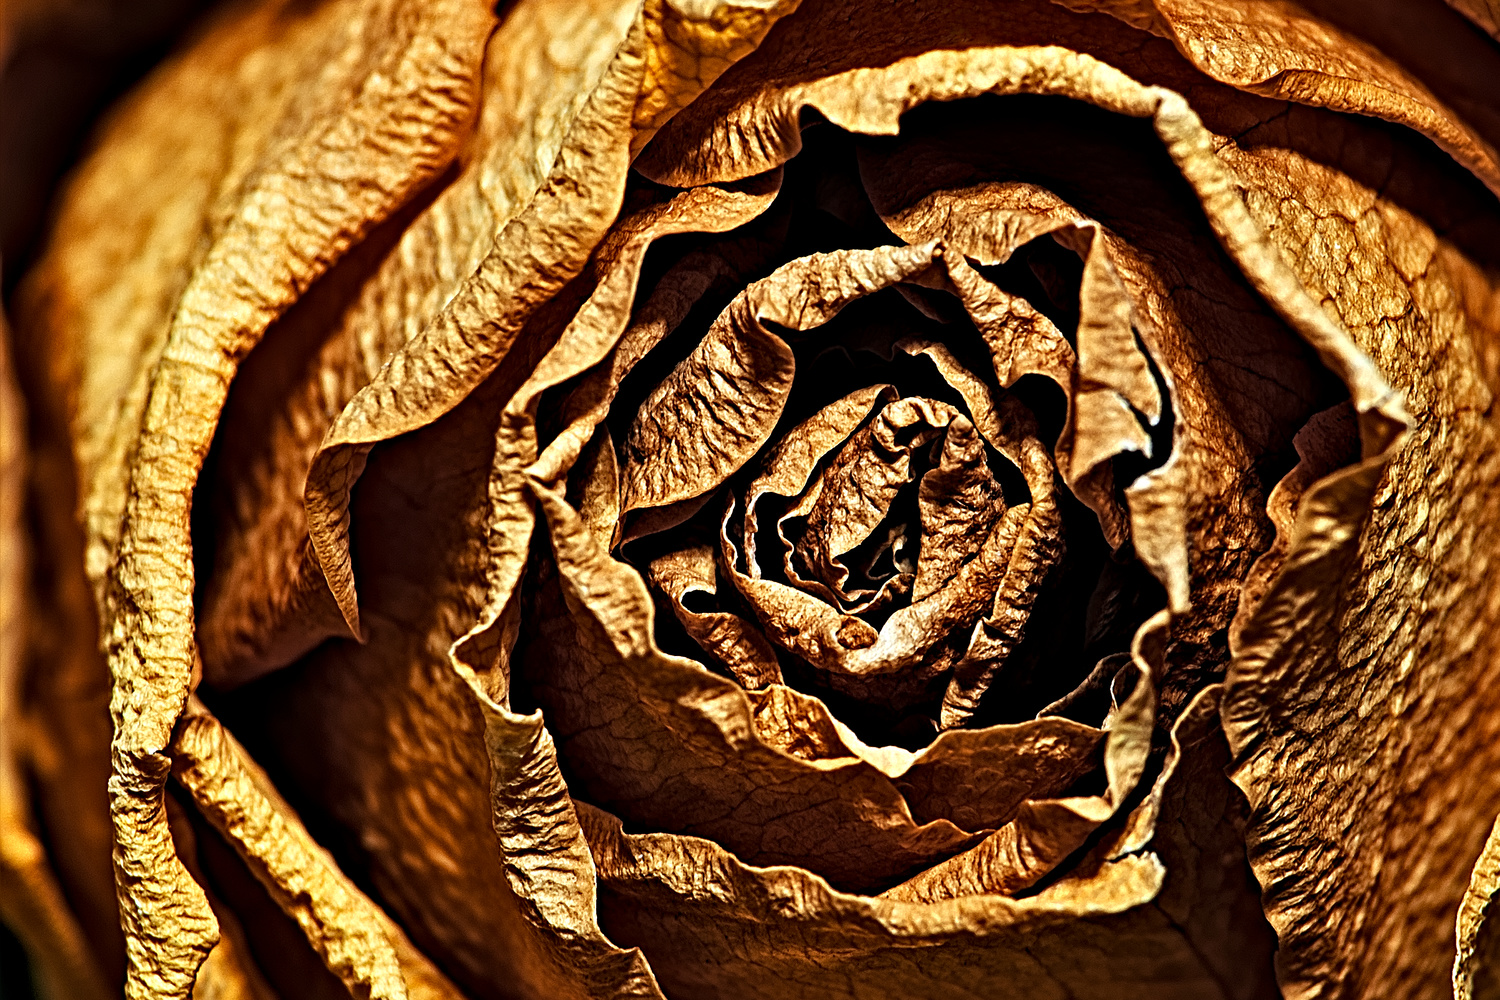 Close Up of a Dried Rose by Tong Thao